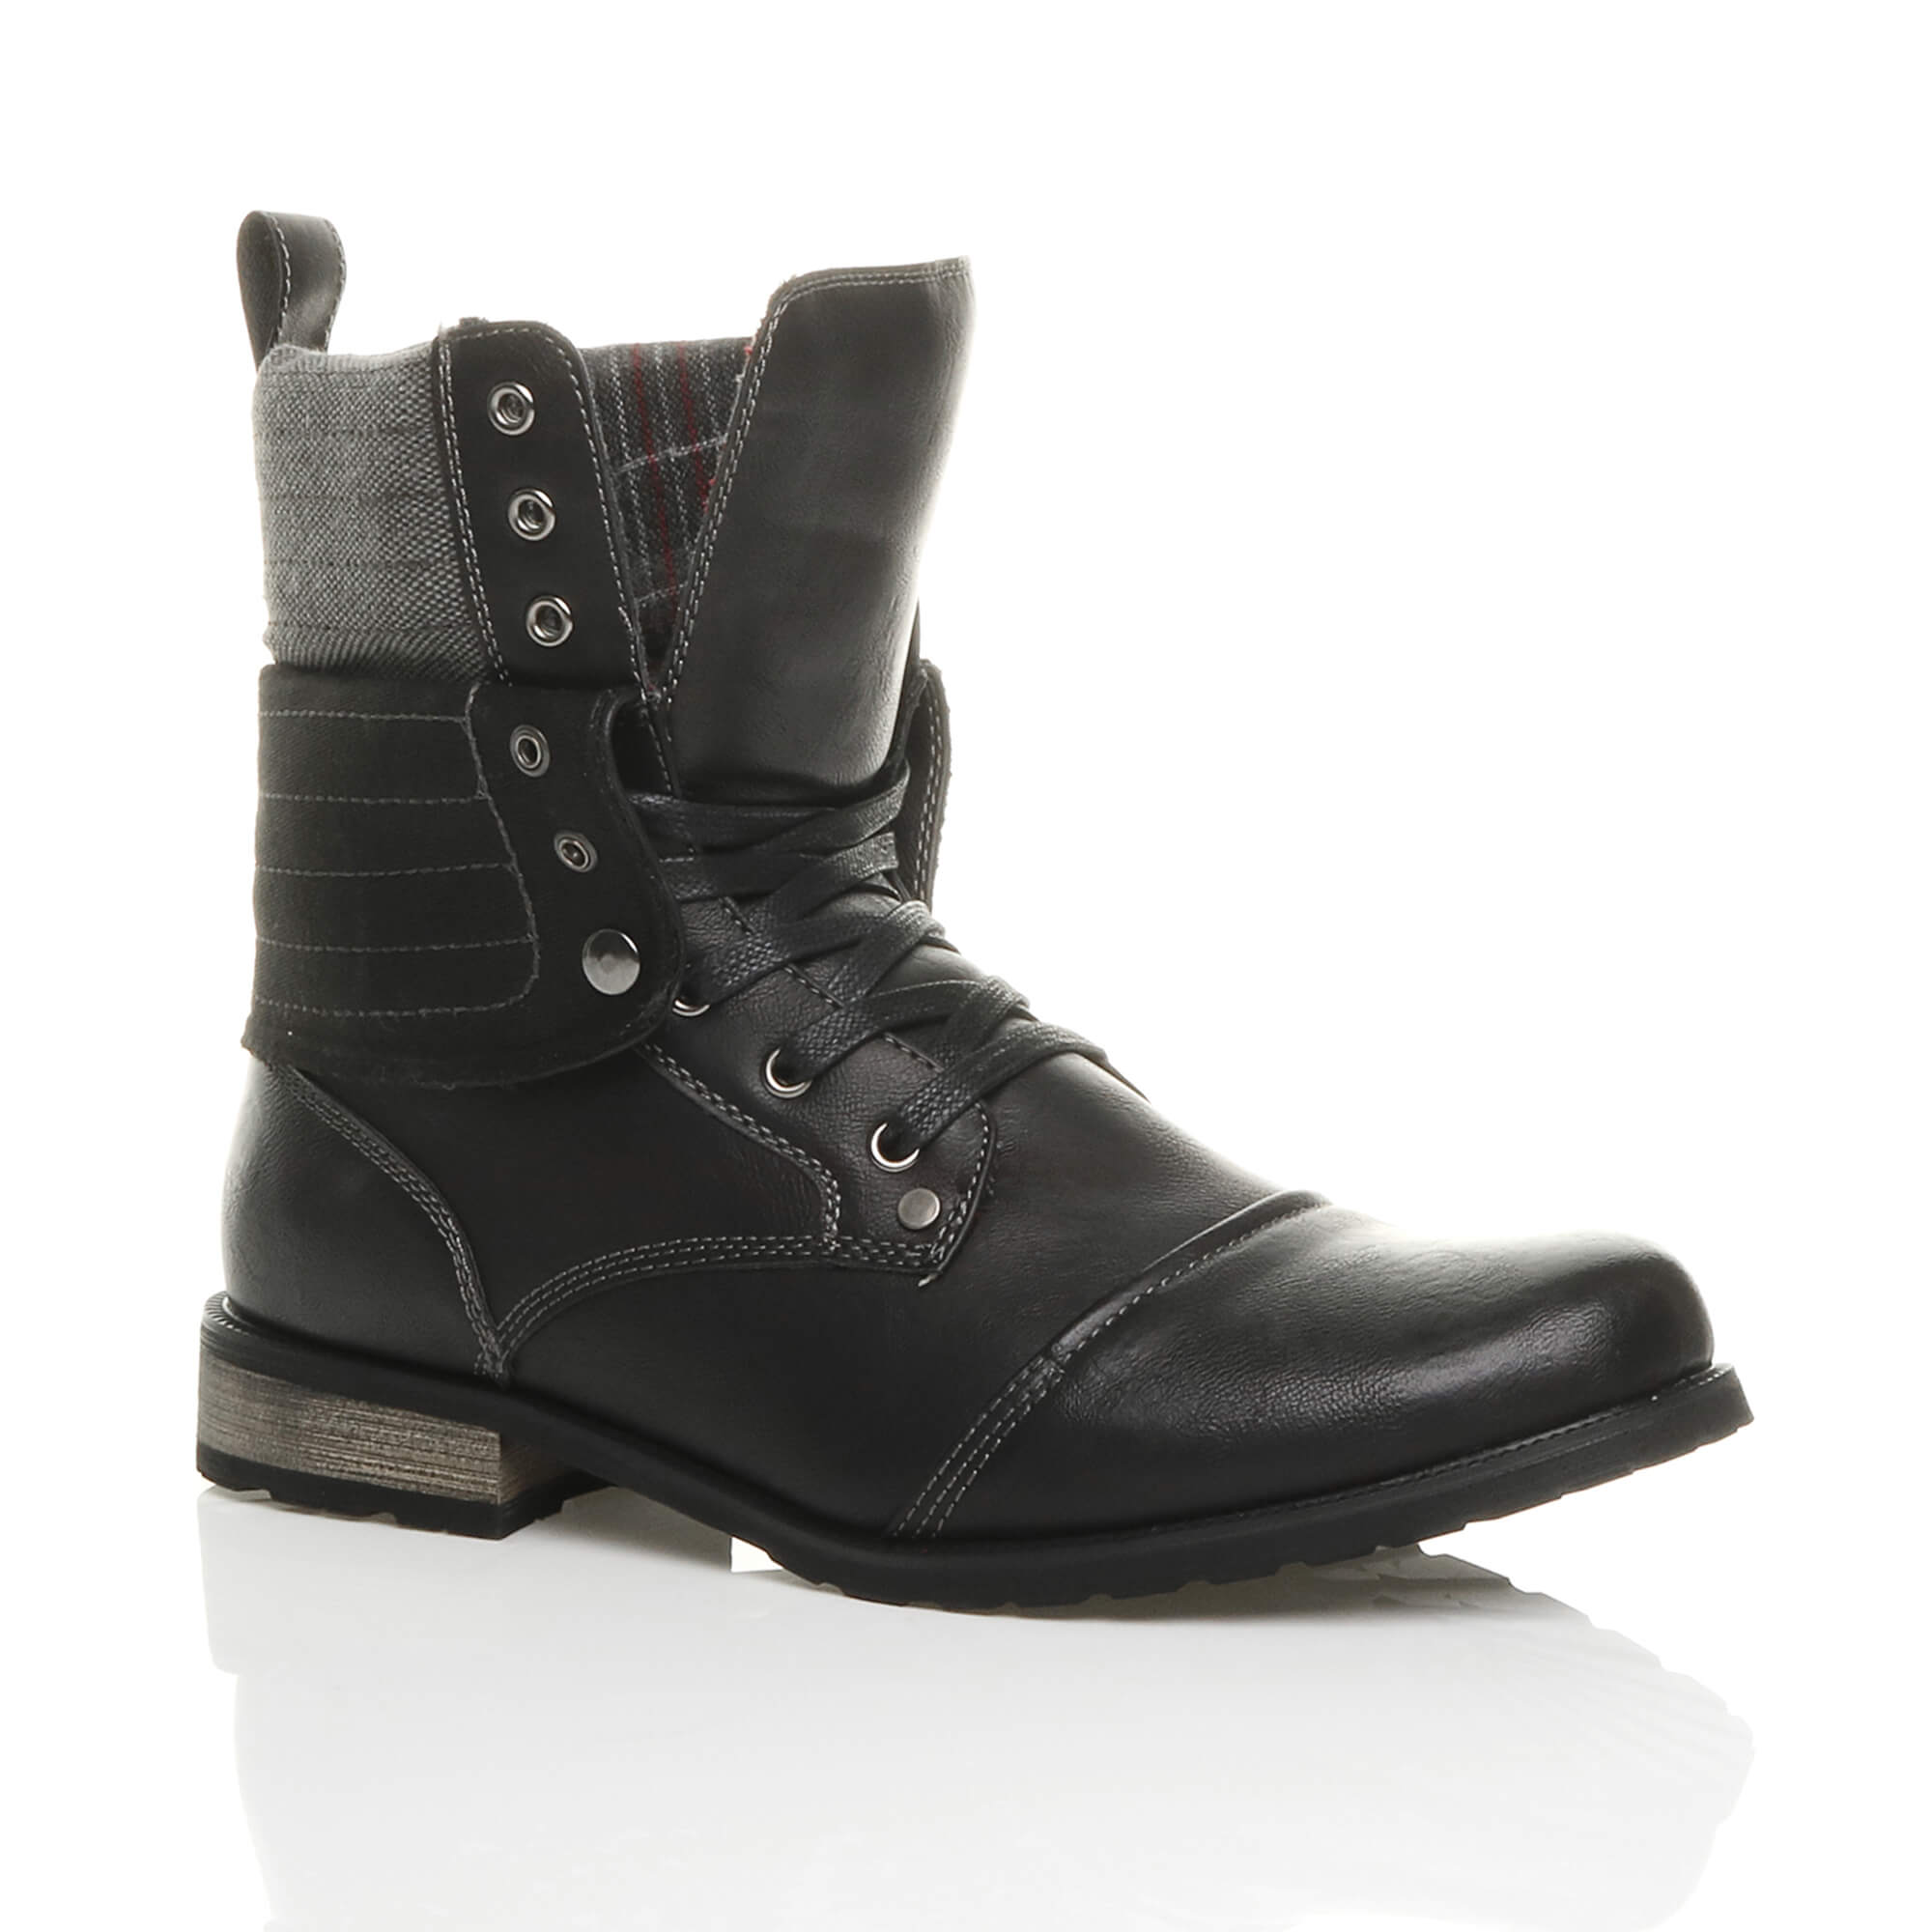 Mens-lace-up-low-heel-flat-fold-over-padded-cuff-military-ankle-boots-size miniatuur 6